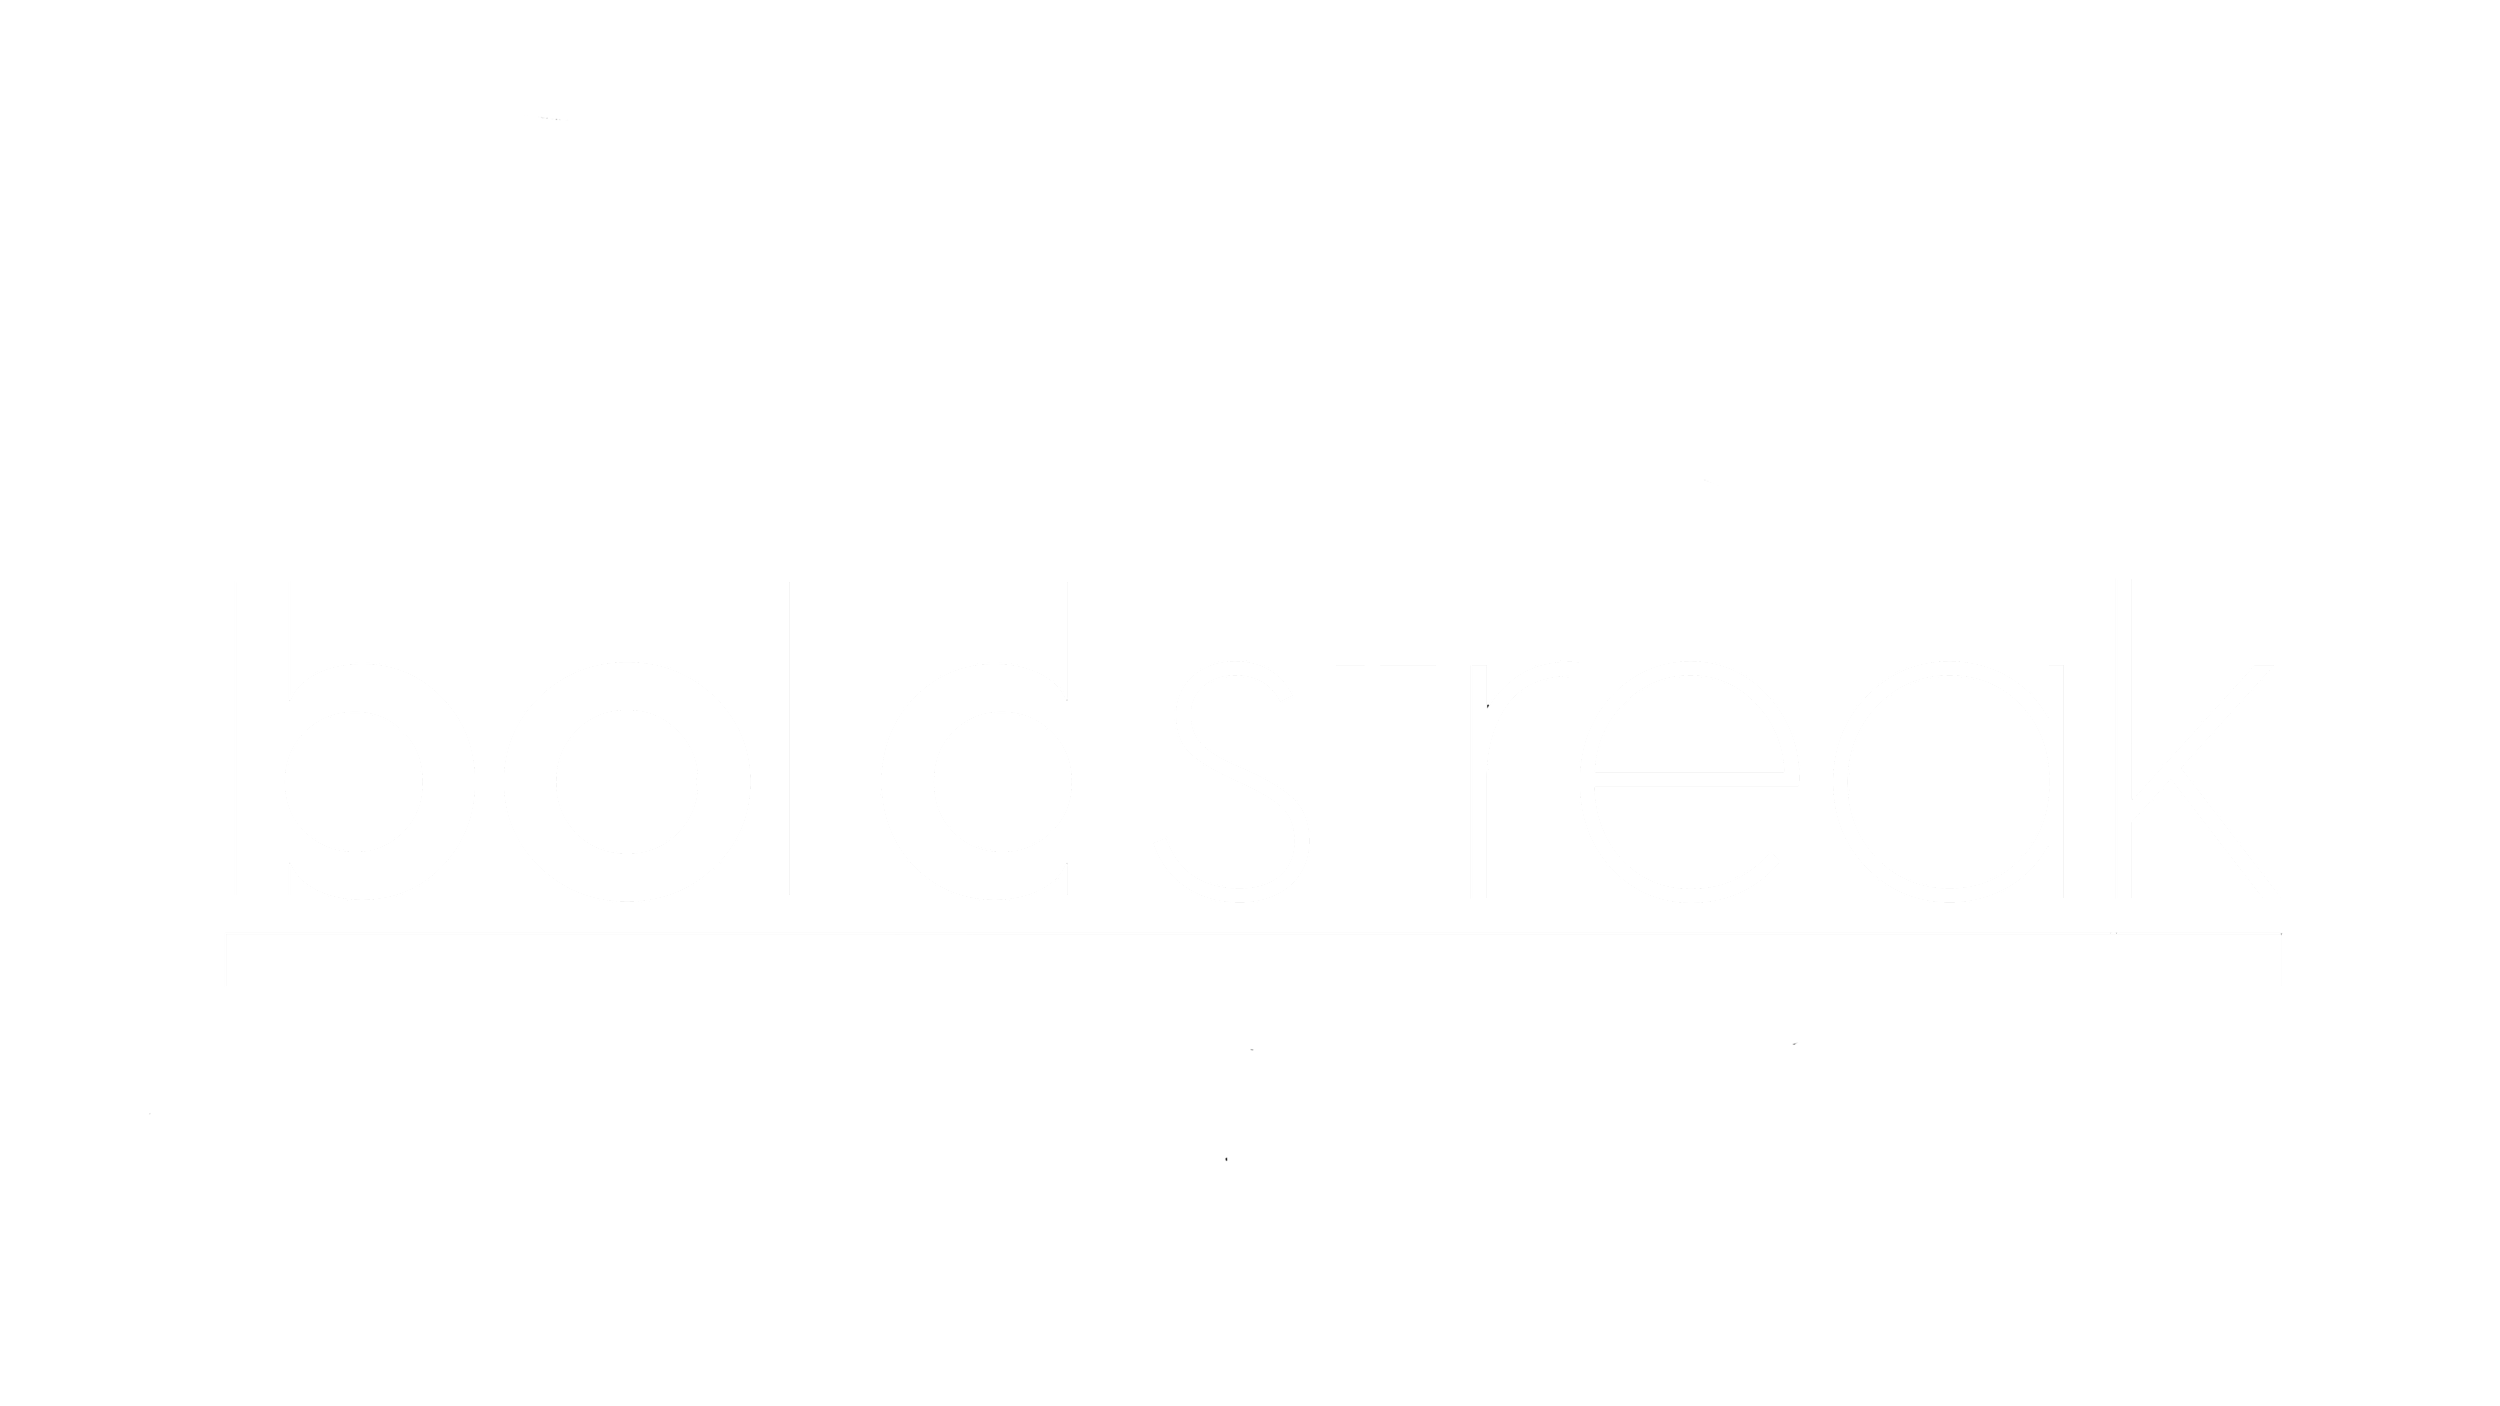 boldstreak logo ALL white no background.png